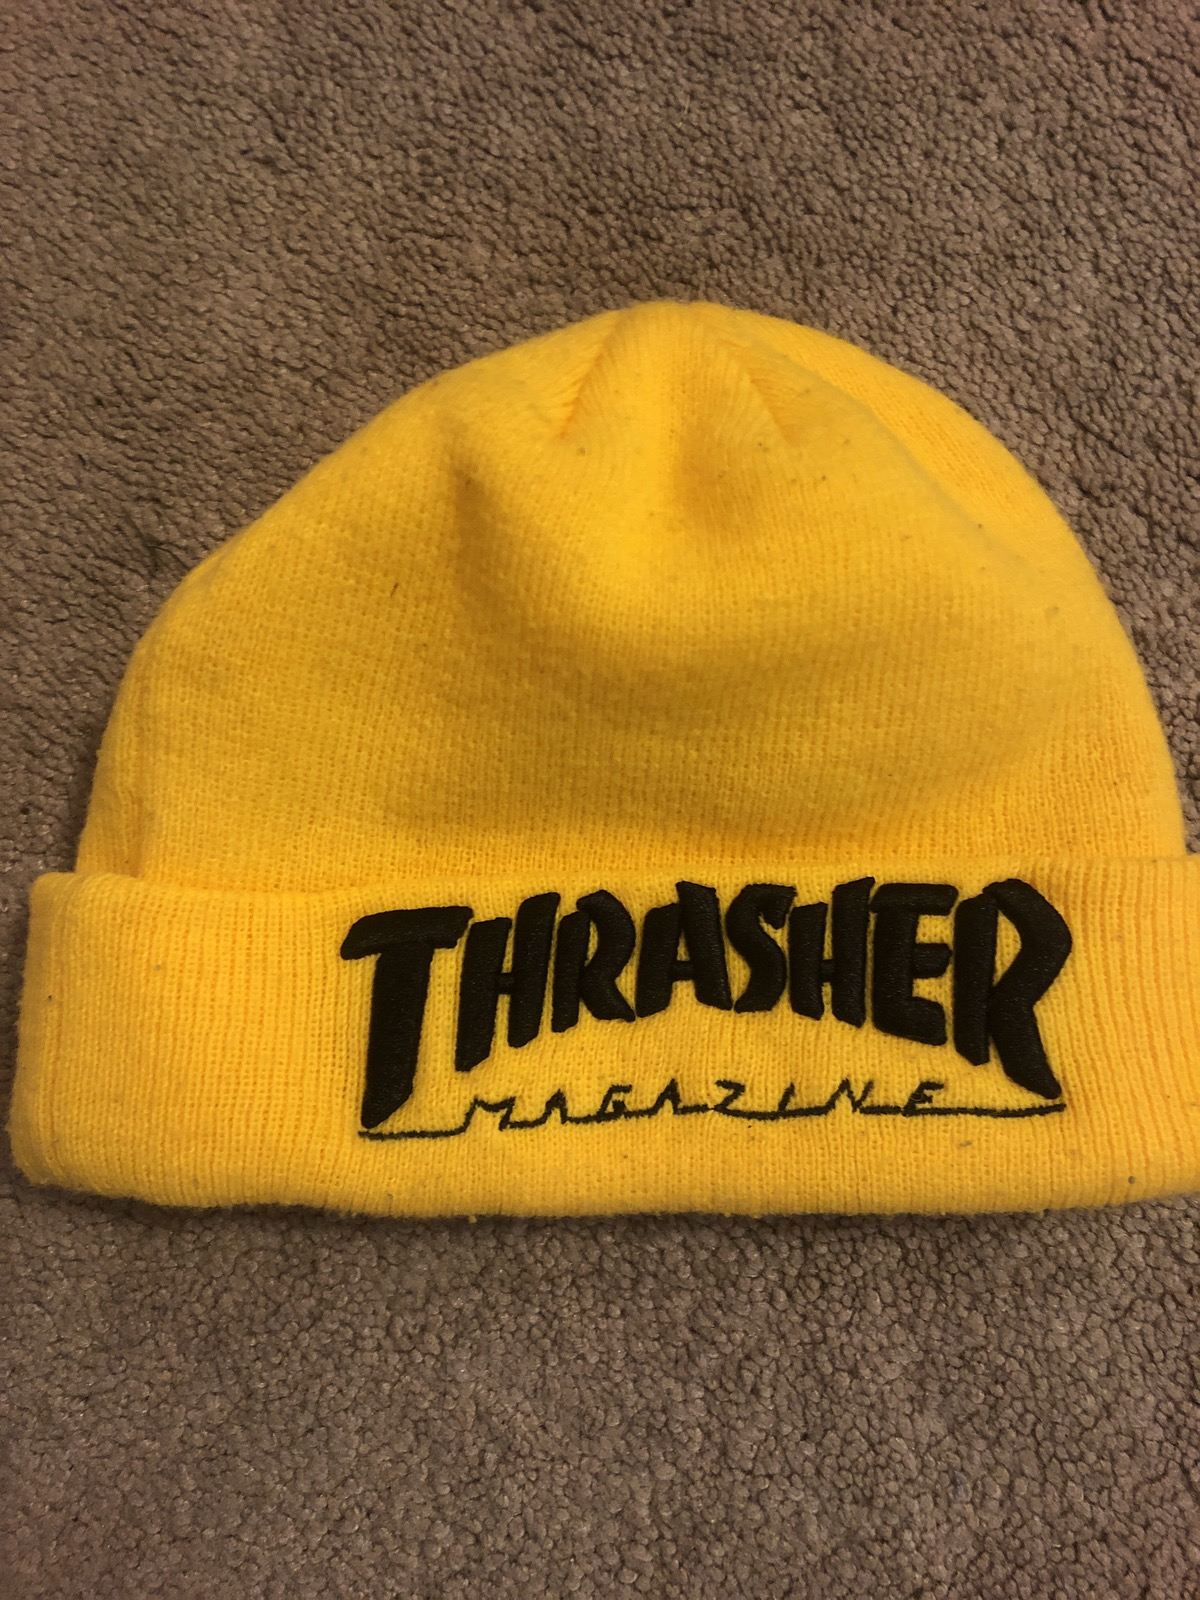 Thrasher Yellow Thrasher Beanie Size one size - Hats for Sale - Grailed b6bca000b02